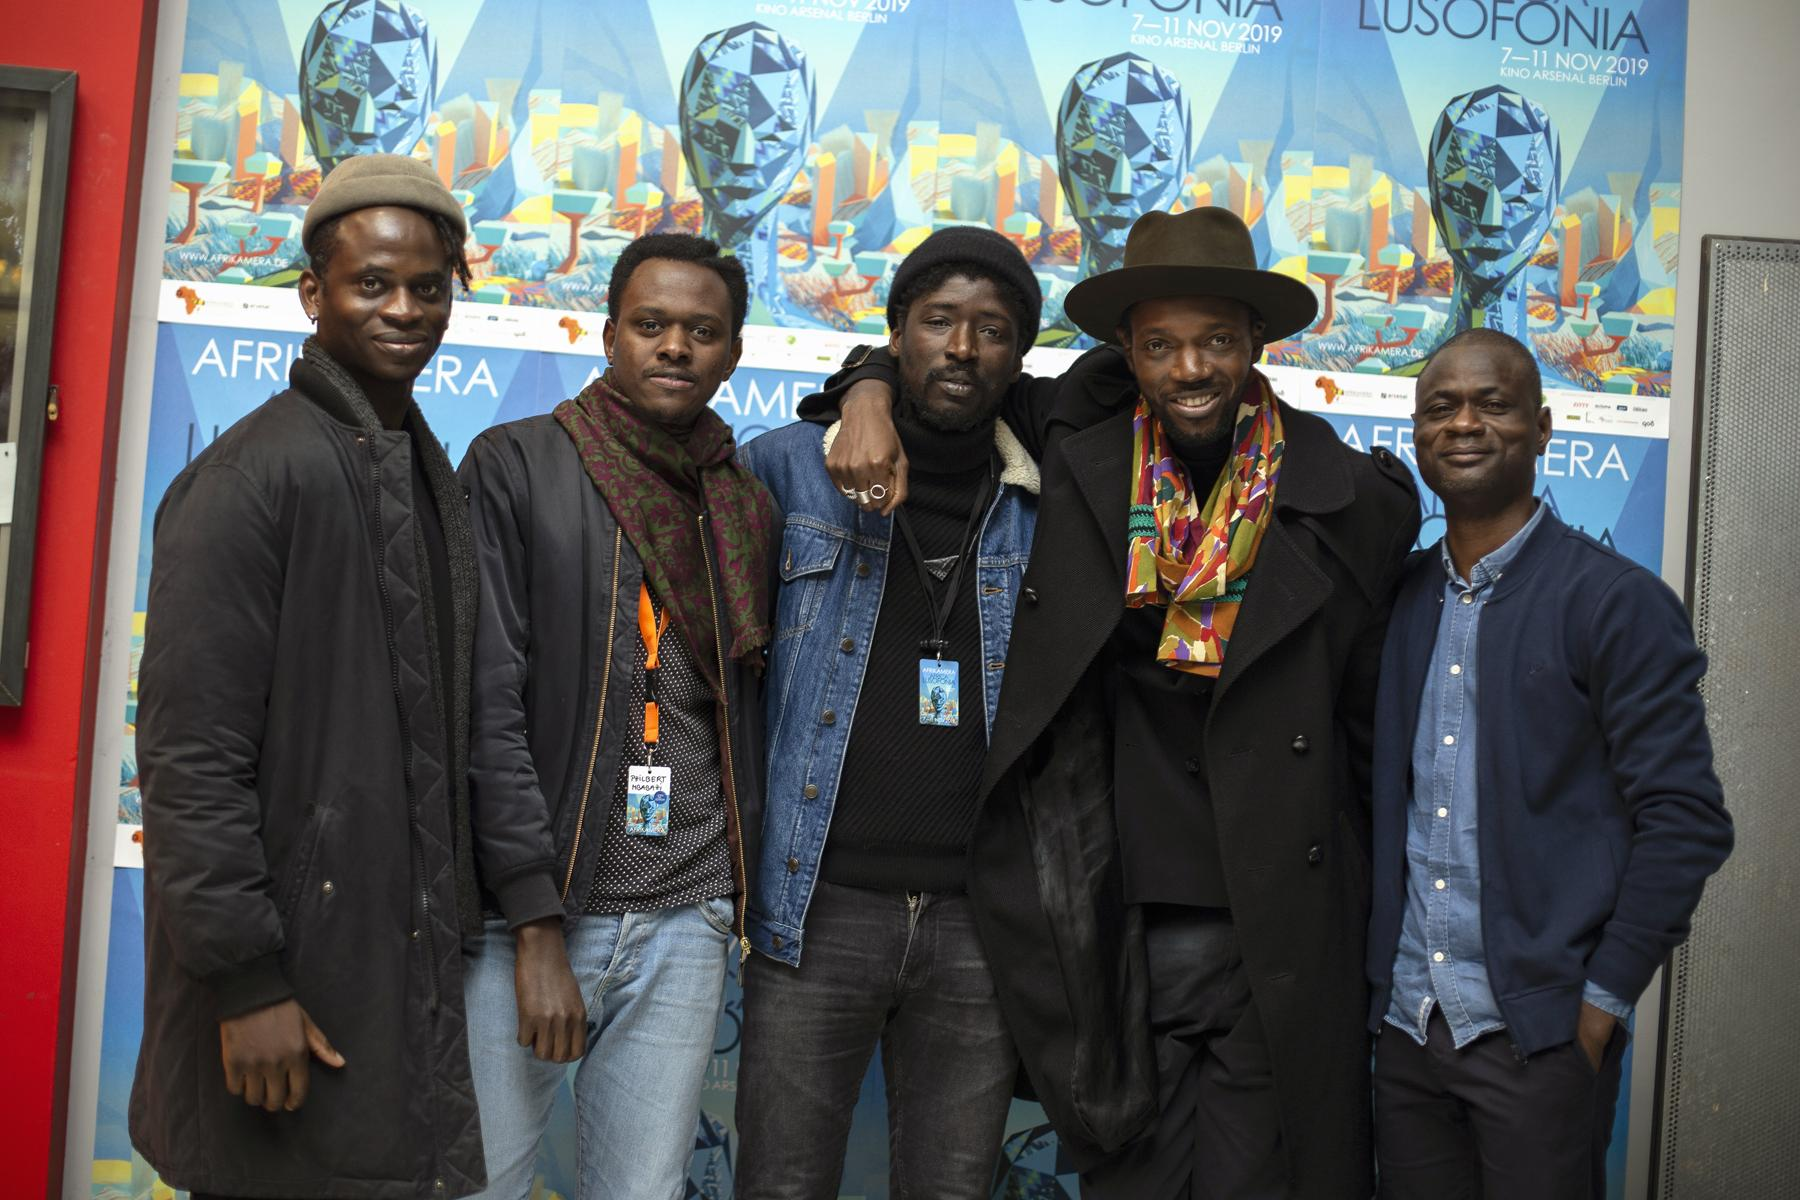 Left to right: Wayne Snow (Nigerian musician), Philbert Mbabazi (Oscar nominated director and screenwriter) , Alassane Si (actor/ director), Baloji (rapper/director) and Alex Moussa at the lobby of Arsenal, Berlin.